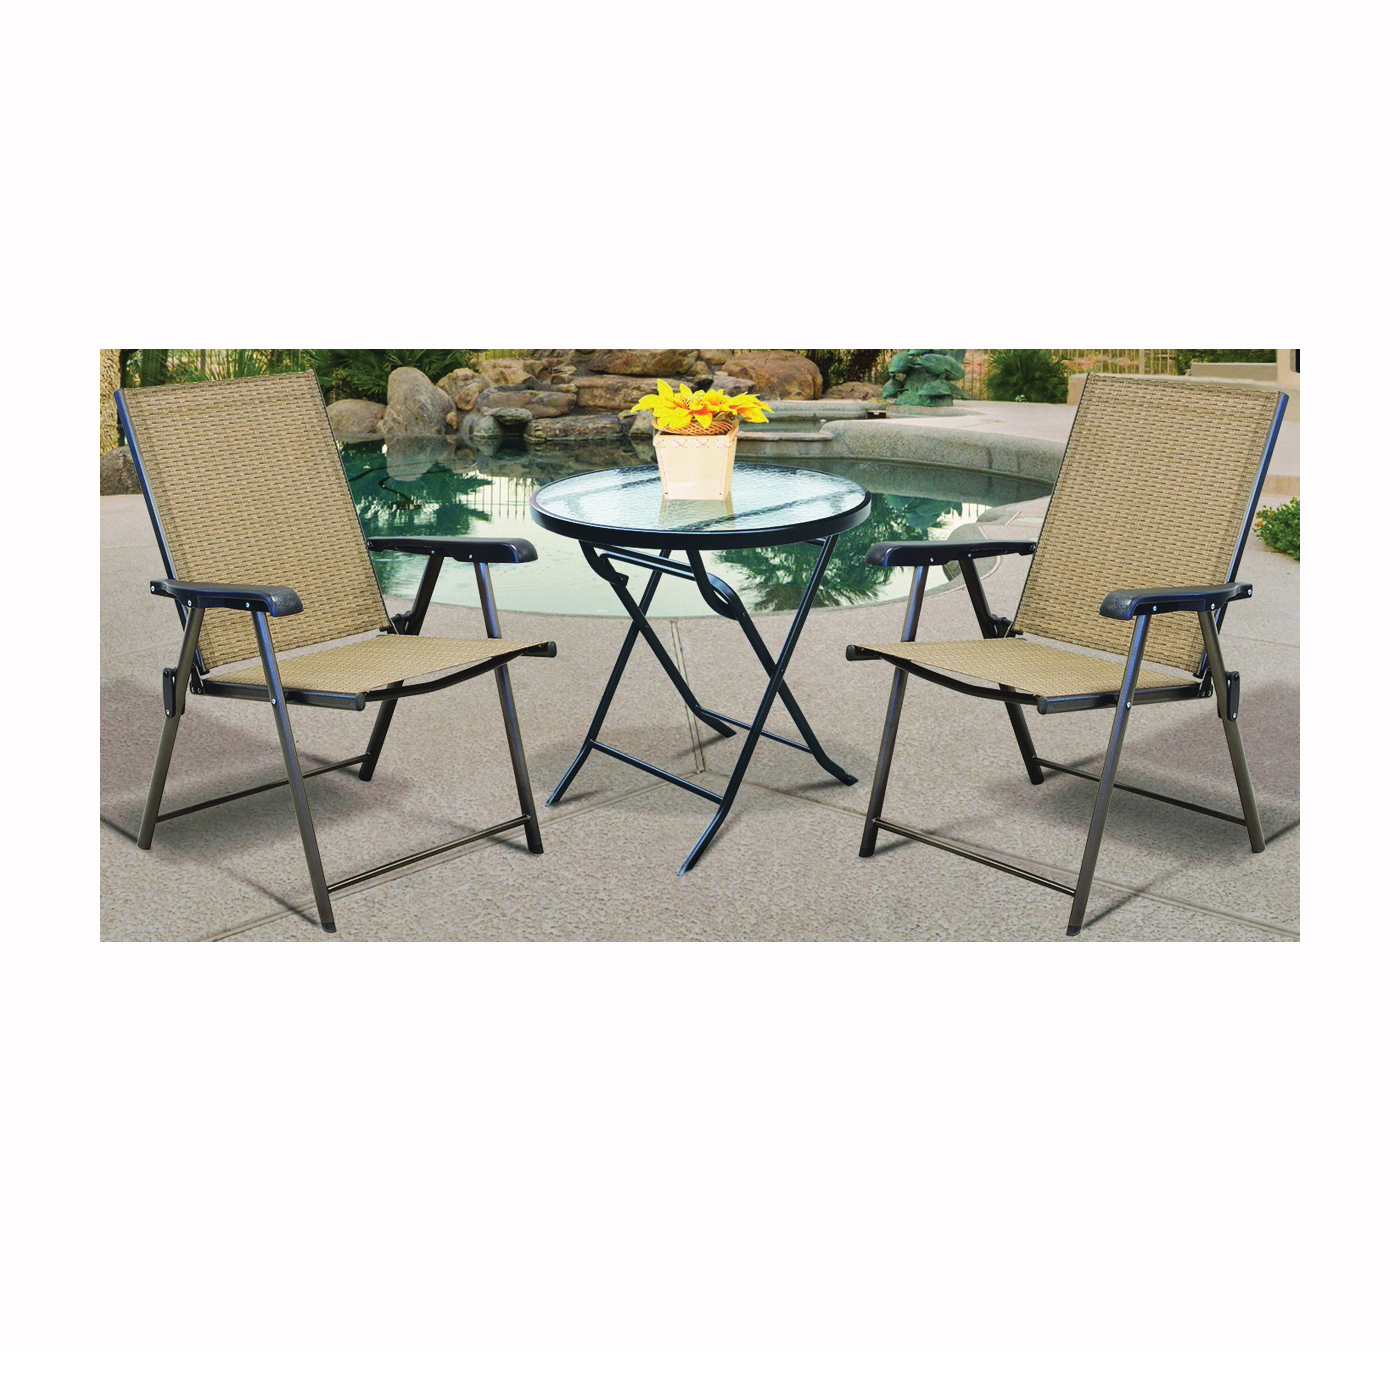 Picture of Seasonal Trends T5C27KR1J33 Folding Table, Glass Tabletop